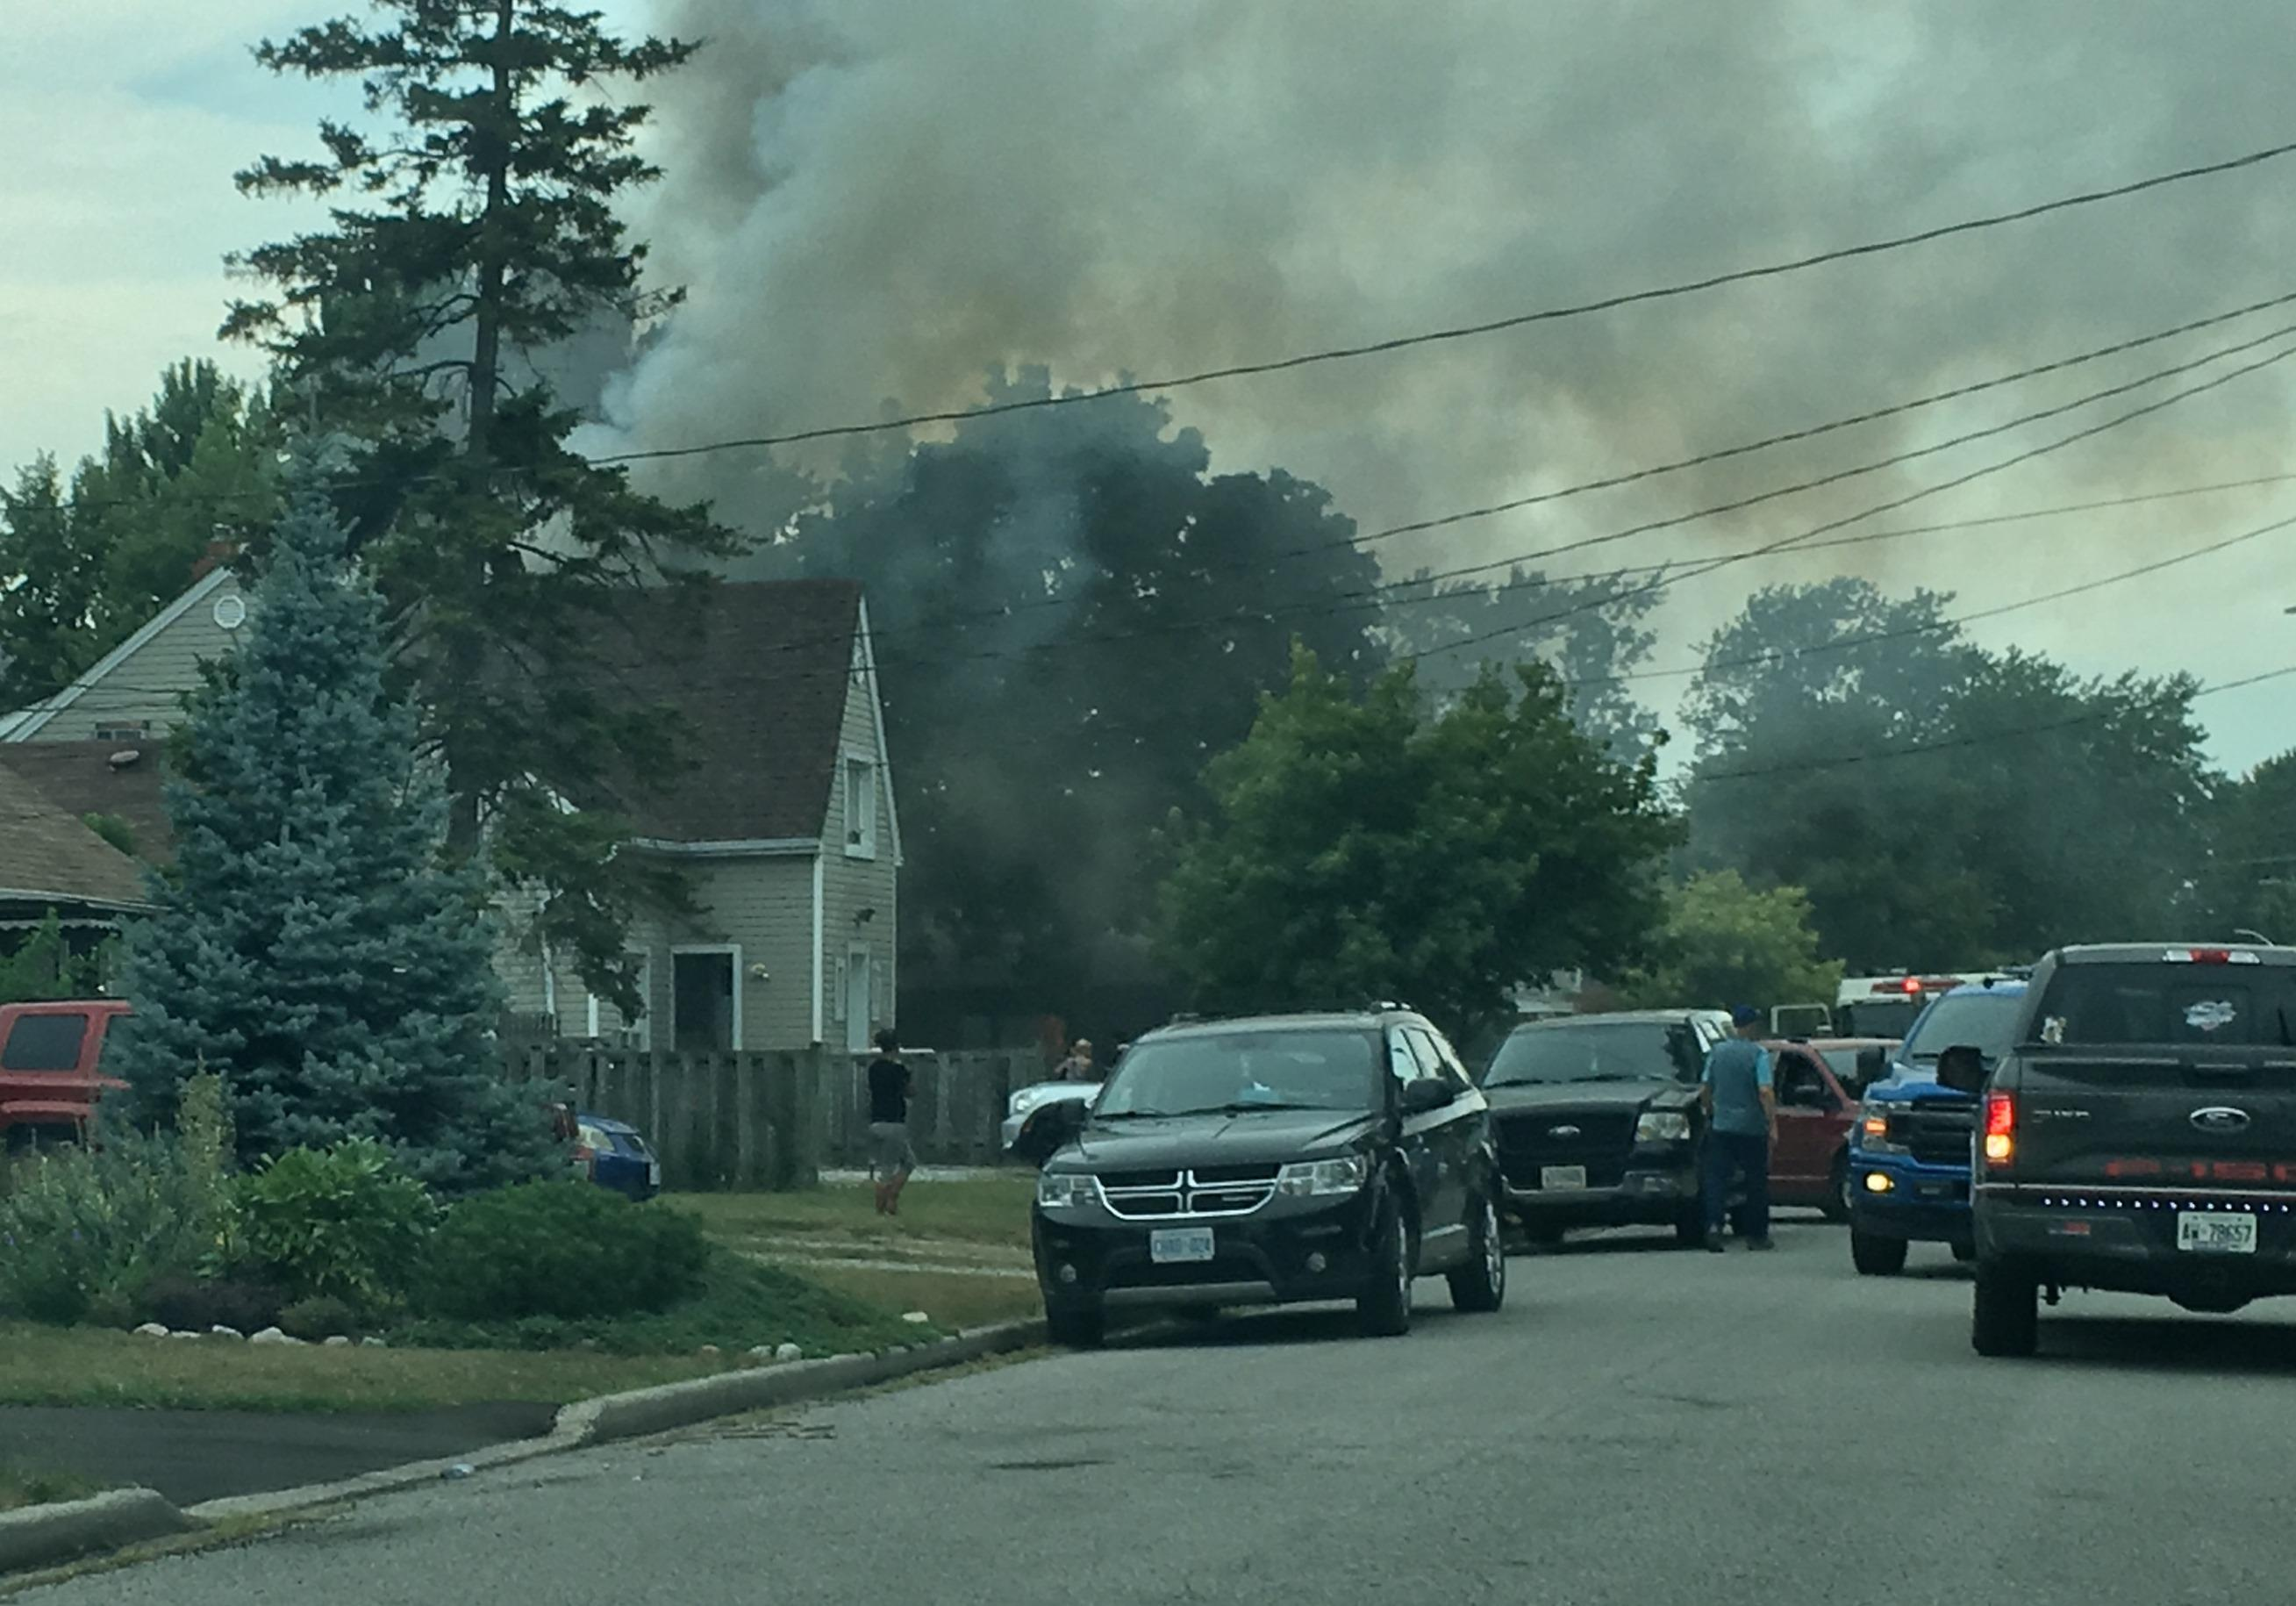 am800-news-house-fire-2400-block-arthur-road-august-18-2019